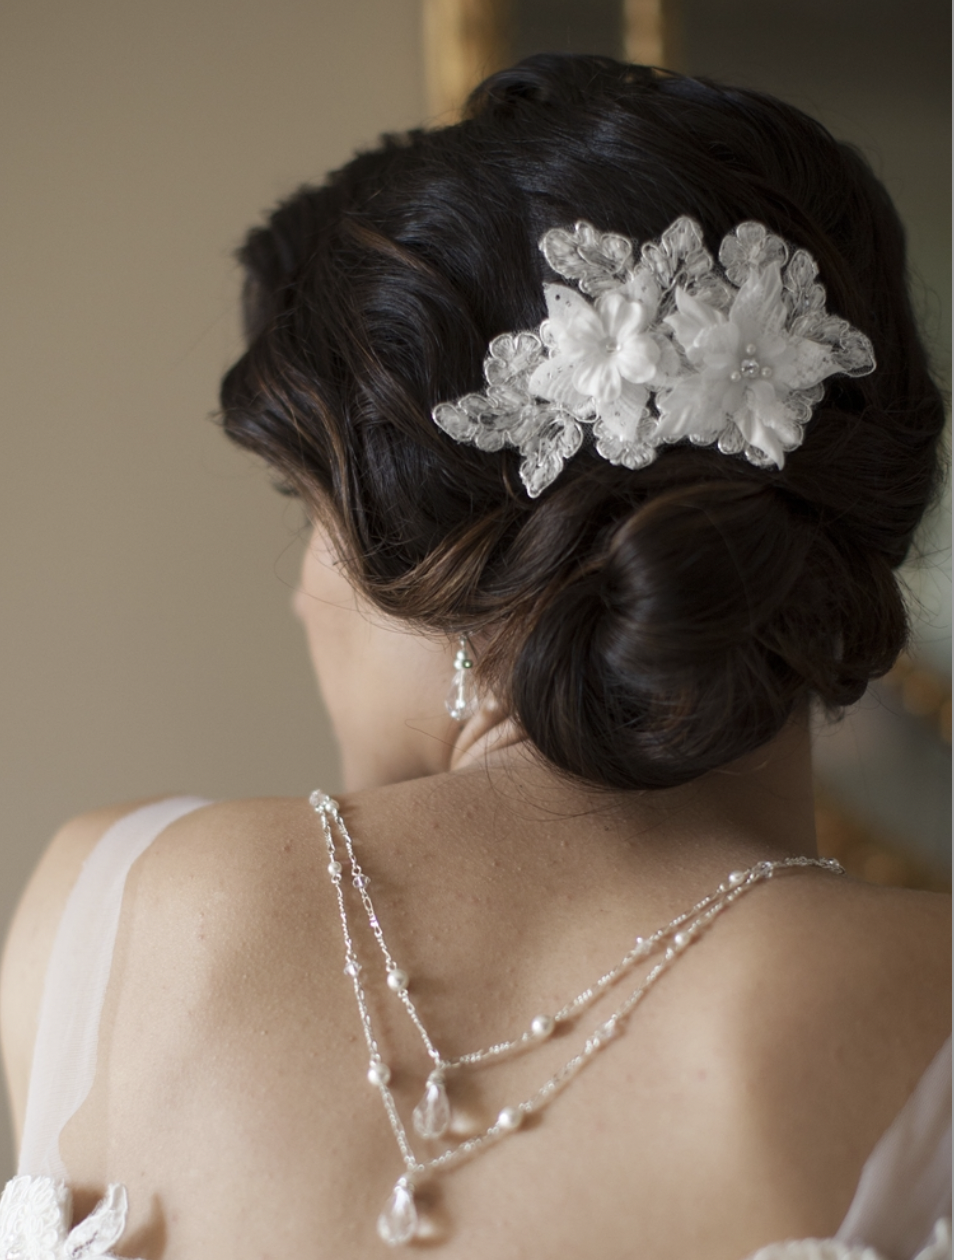 Handmade Bridal Comb with White Beaded Floral Lace Applique